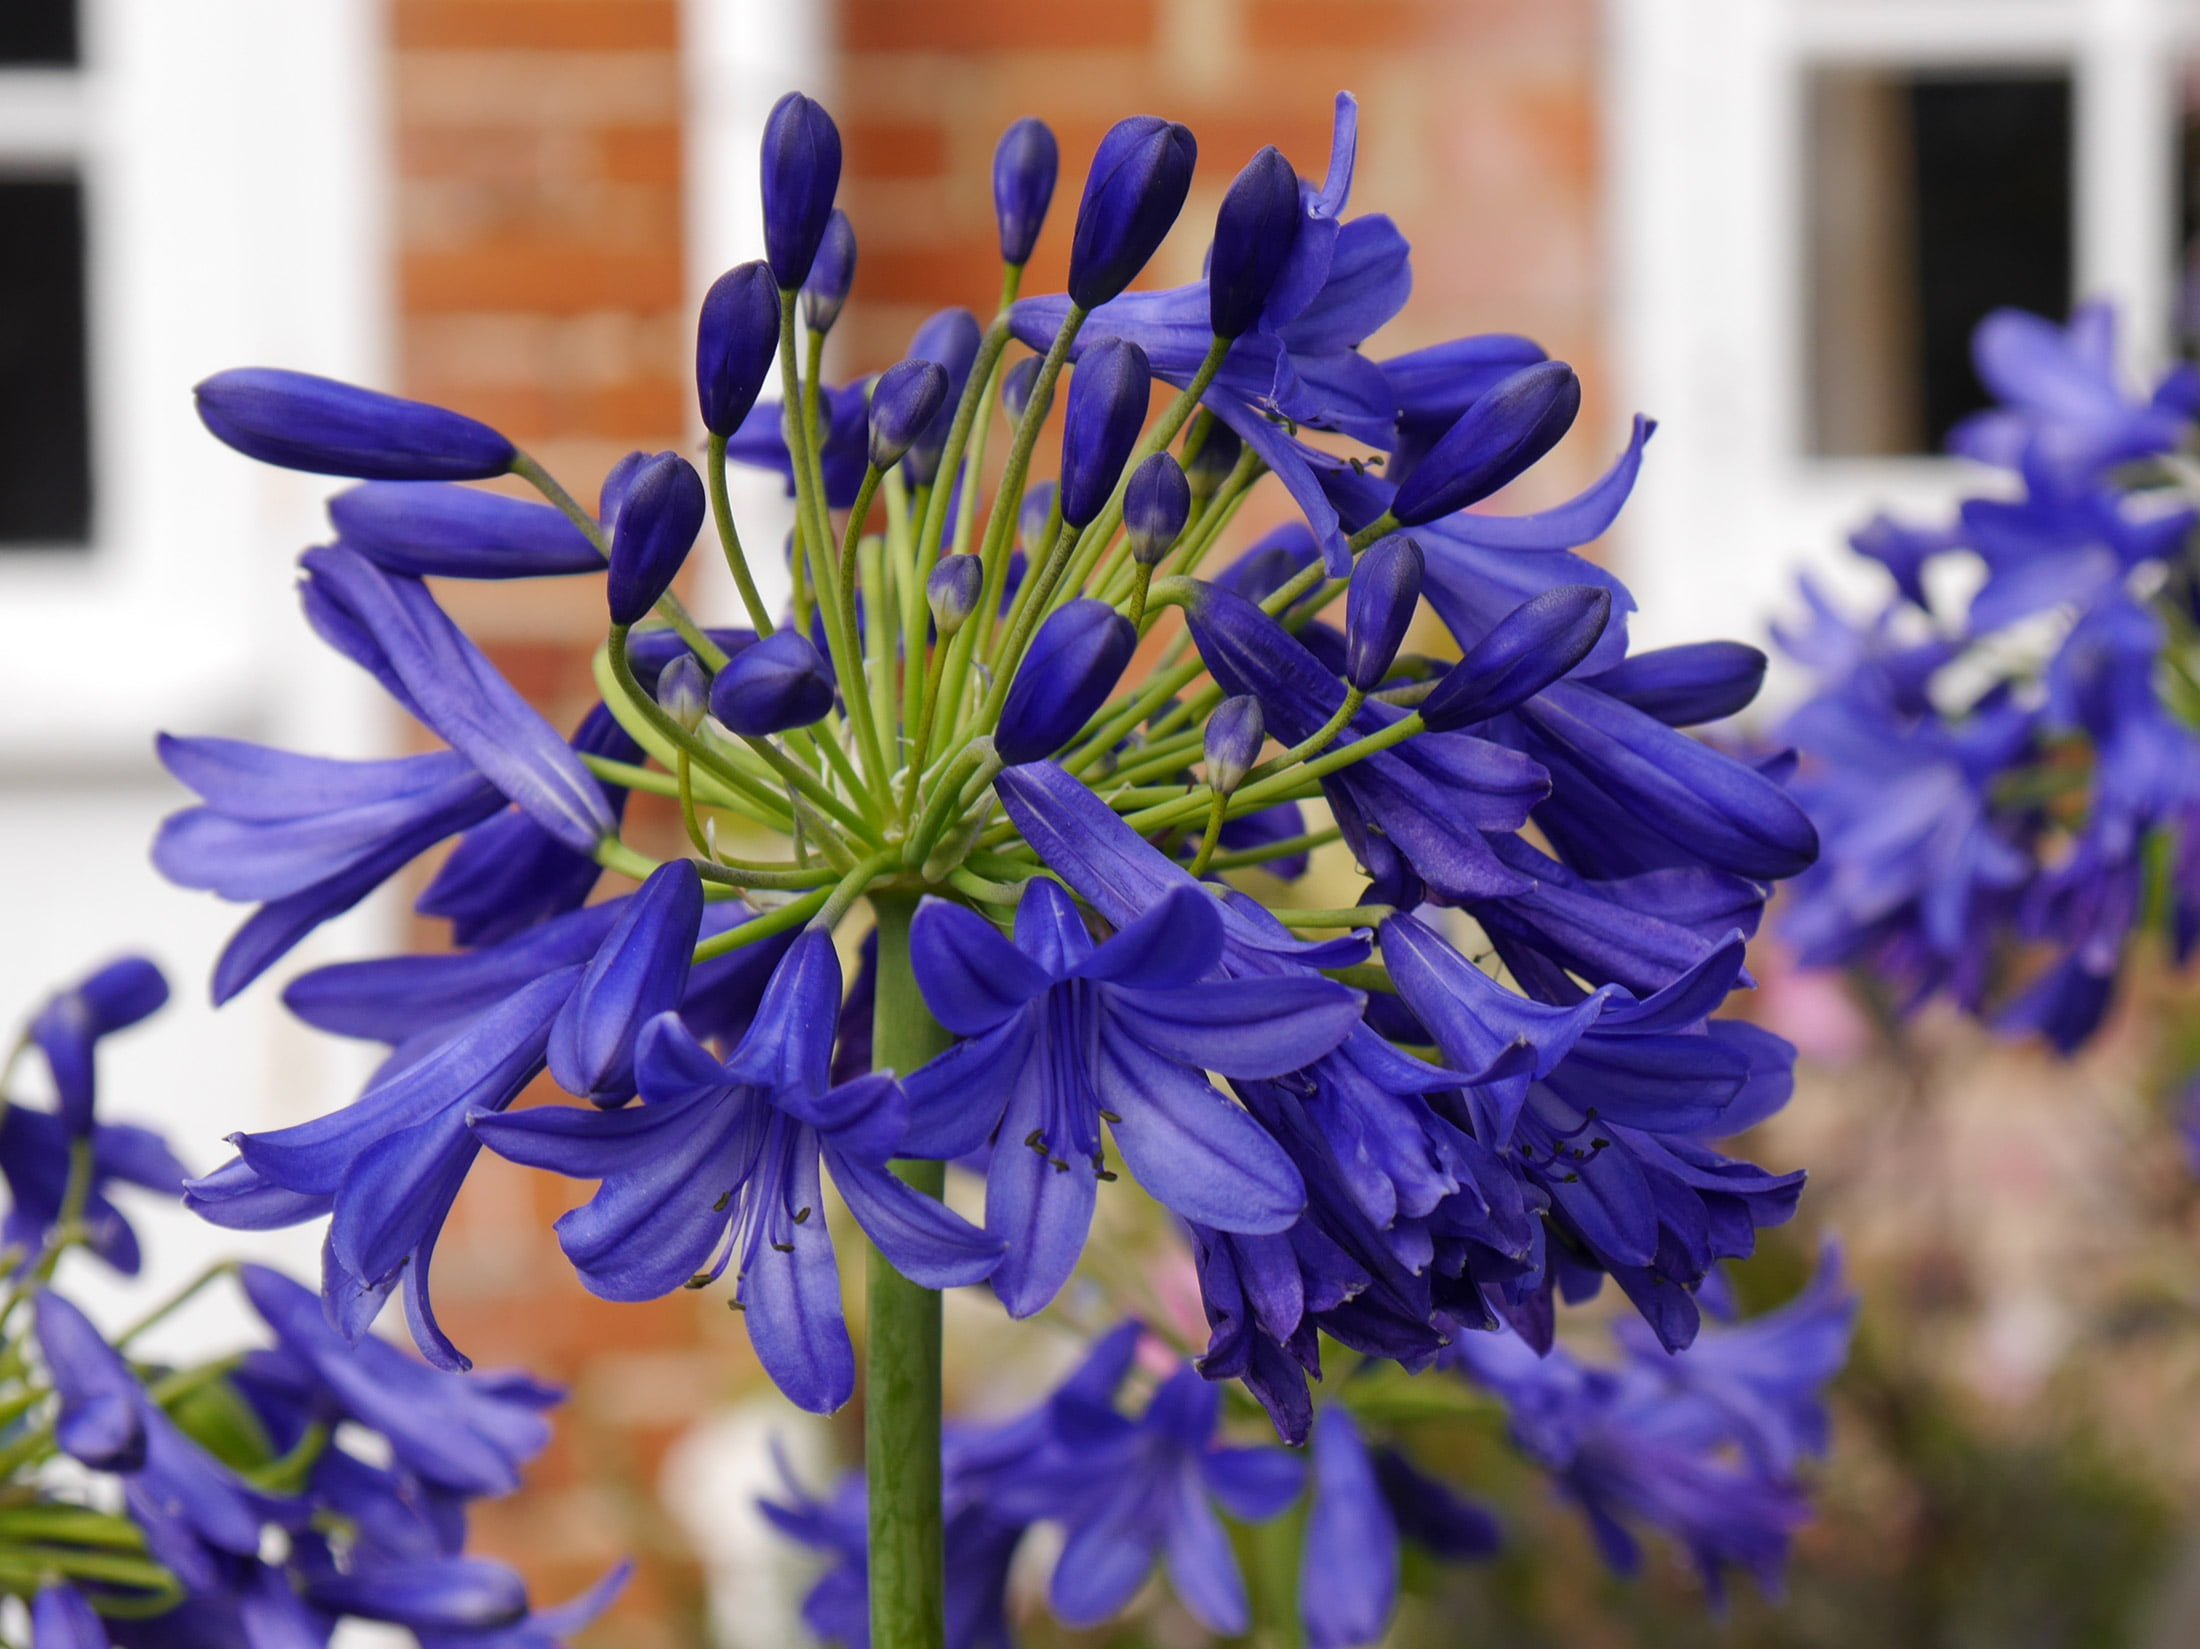 Stand out plants: Agapanthus